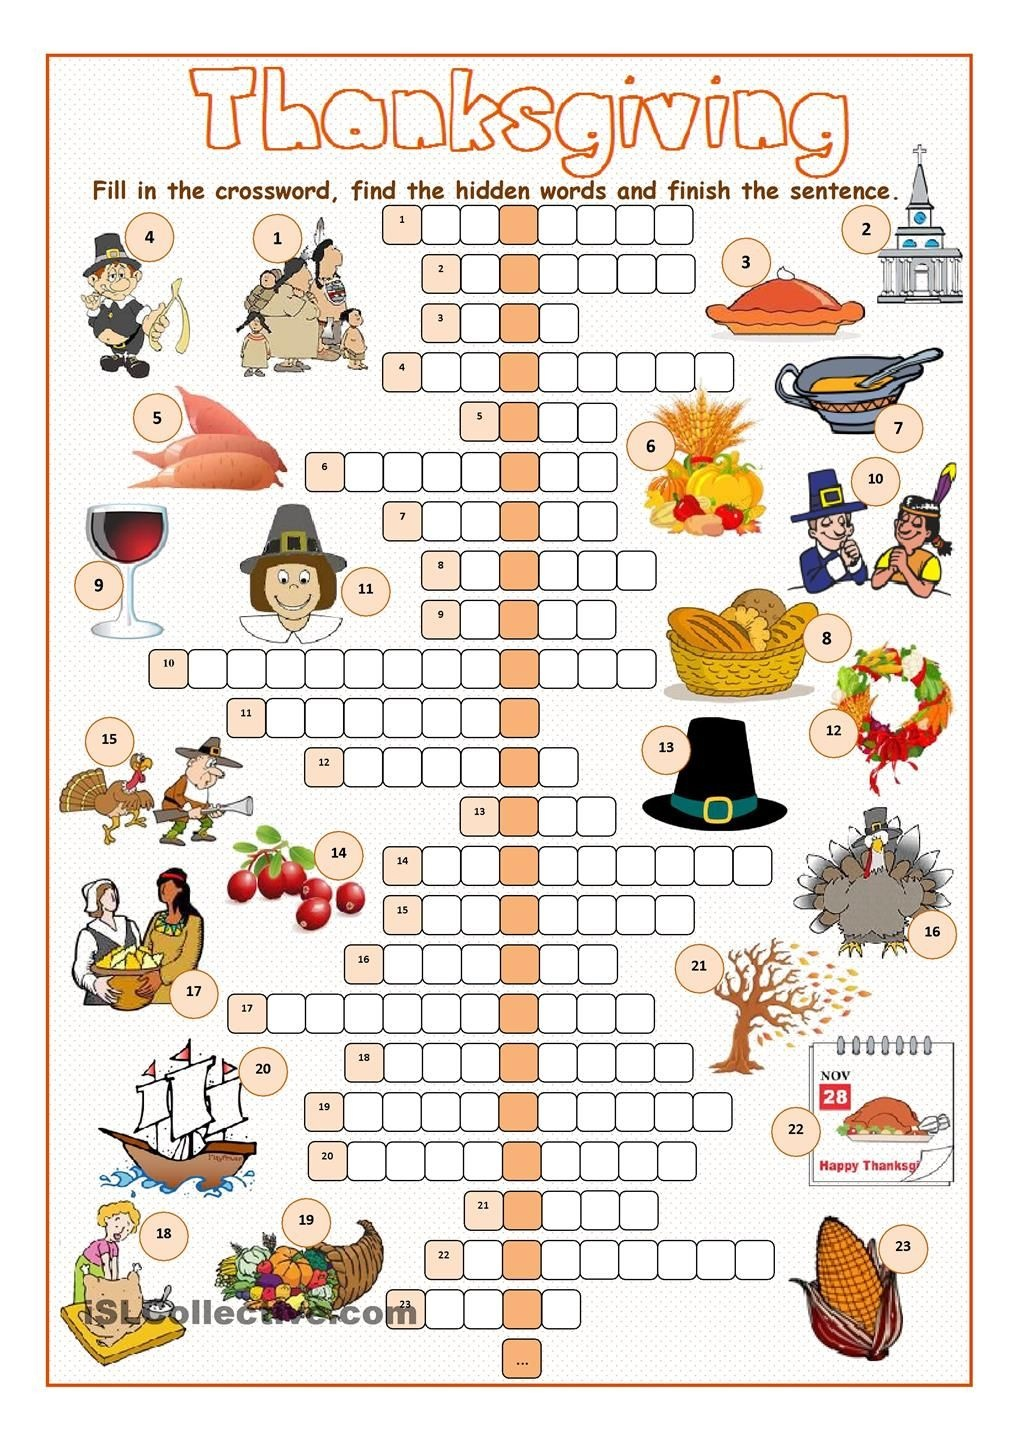 Thanksgiving Crossword Puzzle | Spanish Learning | Cours Anglais - Thanksgiving Crossword Puzzles Printable Free